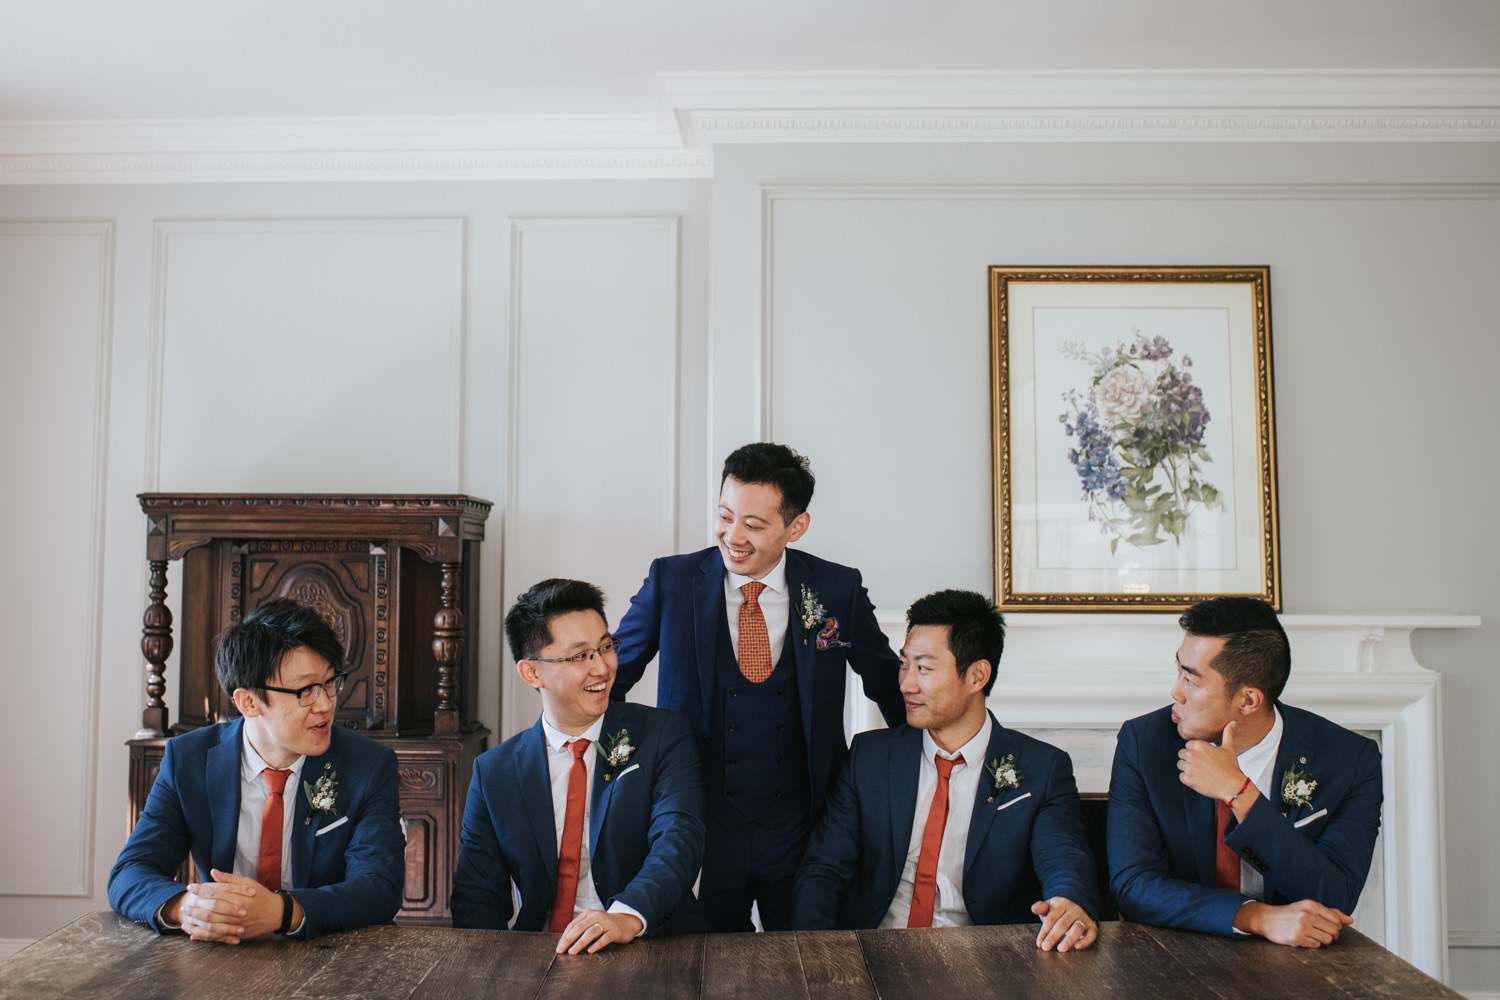 Groomsmen Photo at the Graydon Hall Manor